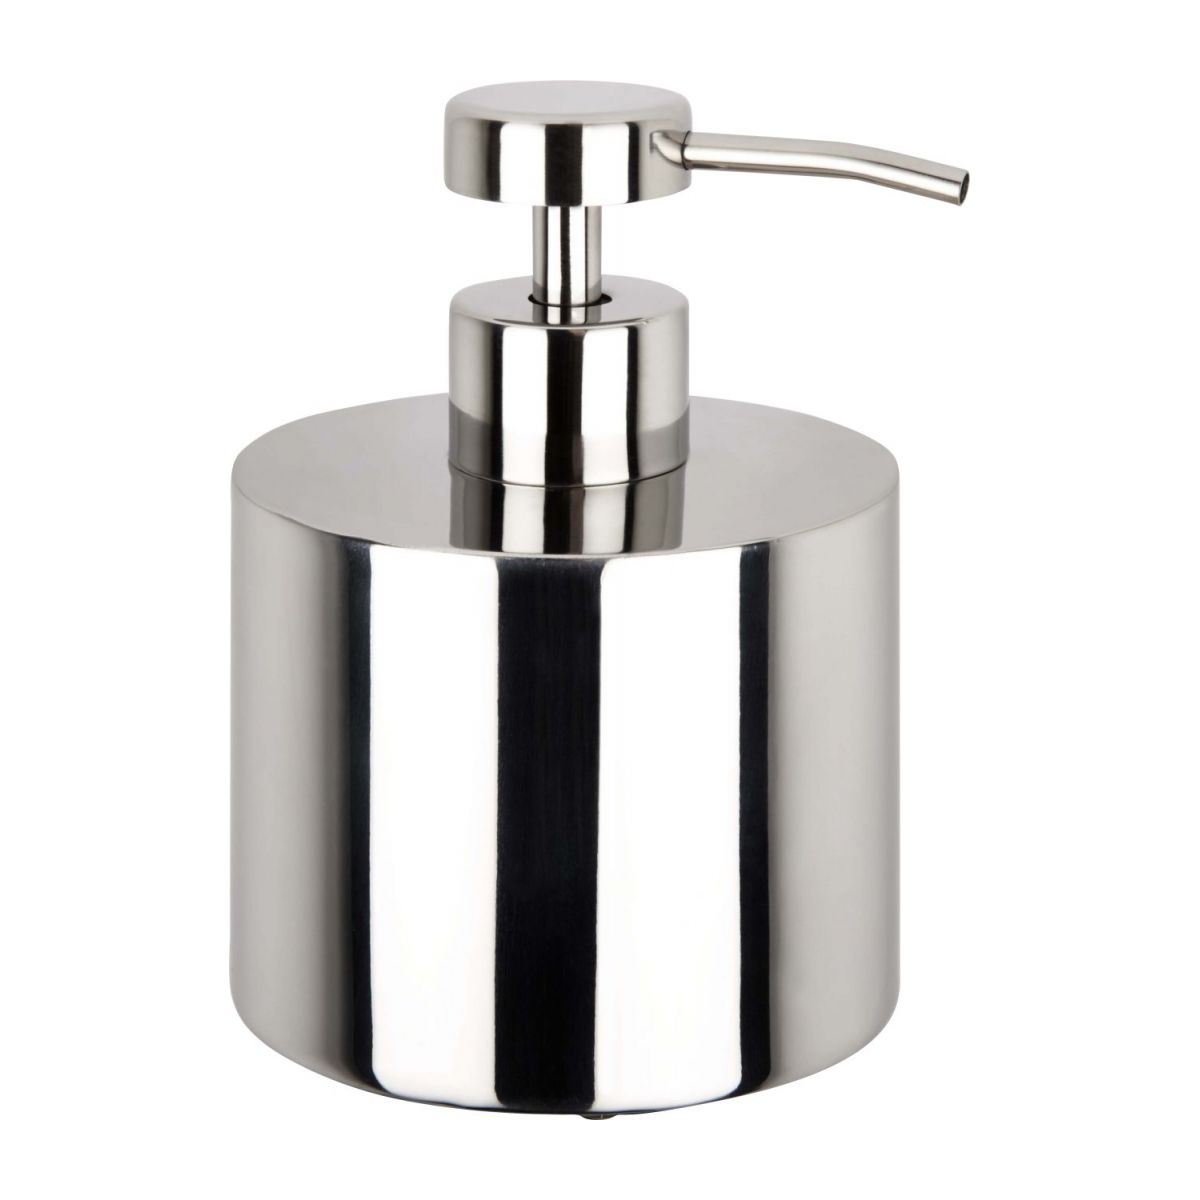 Soap dispenser in stainless steel n°2